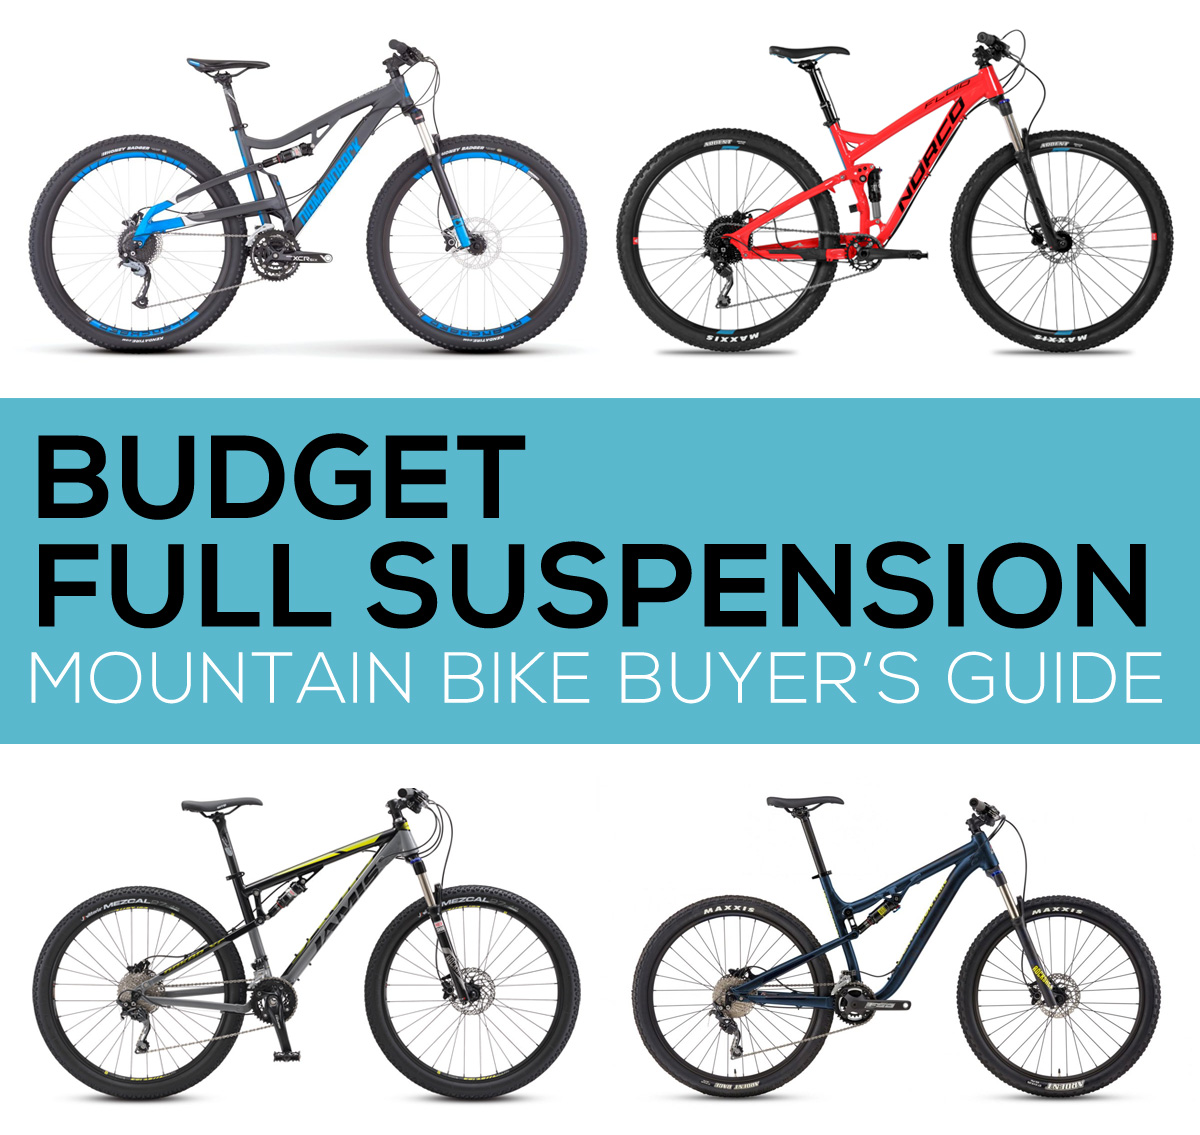 Budget Full Suspension Mountain Bike Buyers Guide